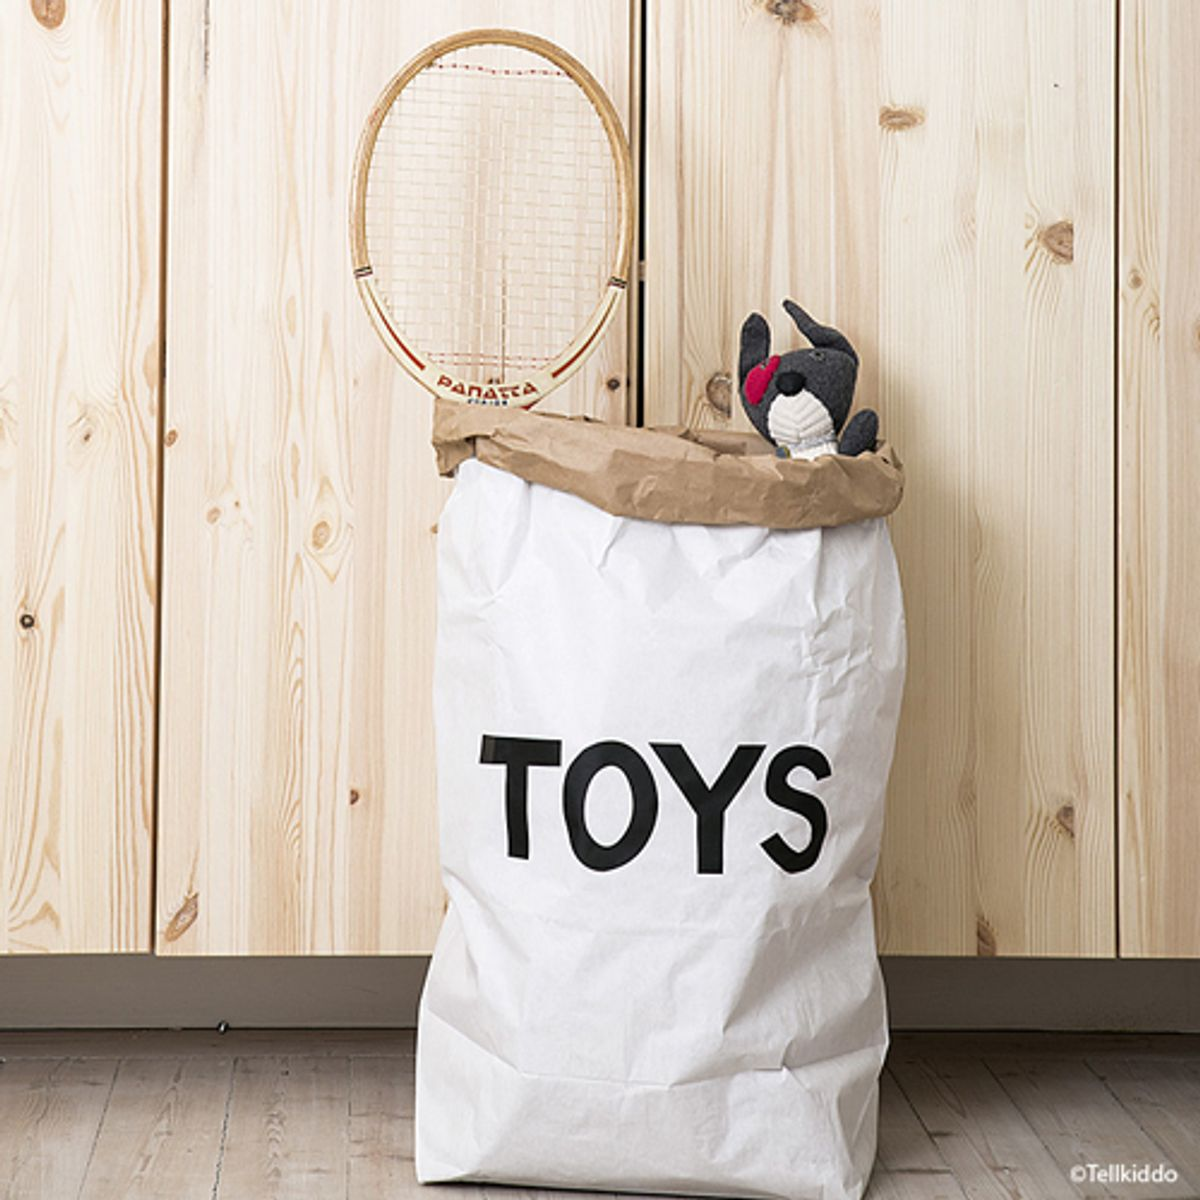 sac de rangement enfant en papier recycl toys tellkiddo decoclico. Black Bedroom Furniture Sets. Home Design Ideas